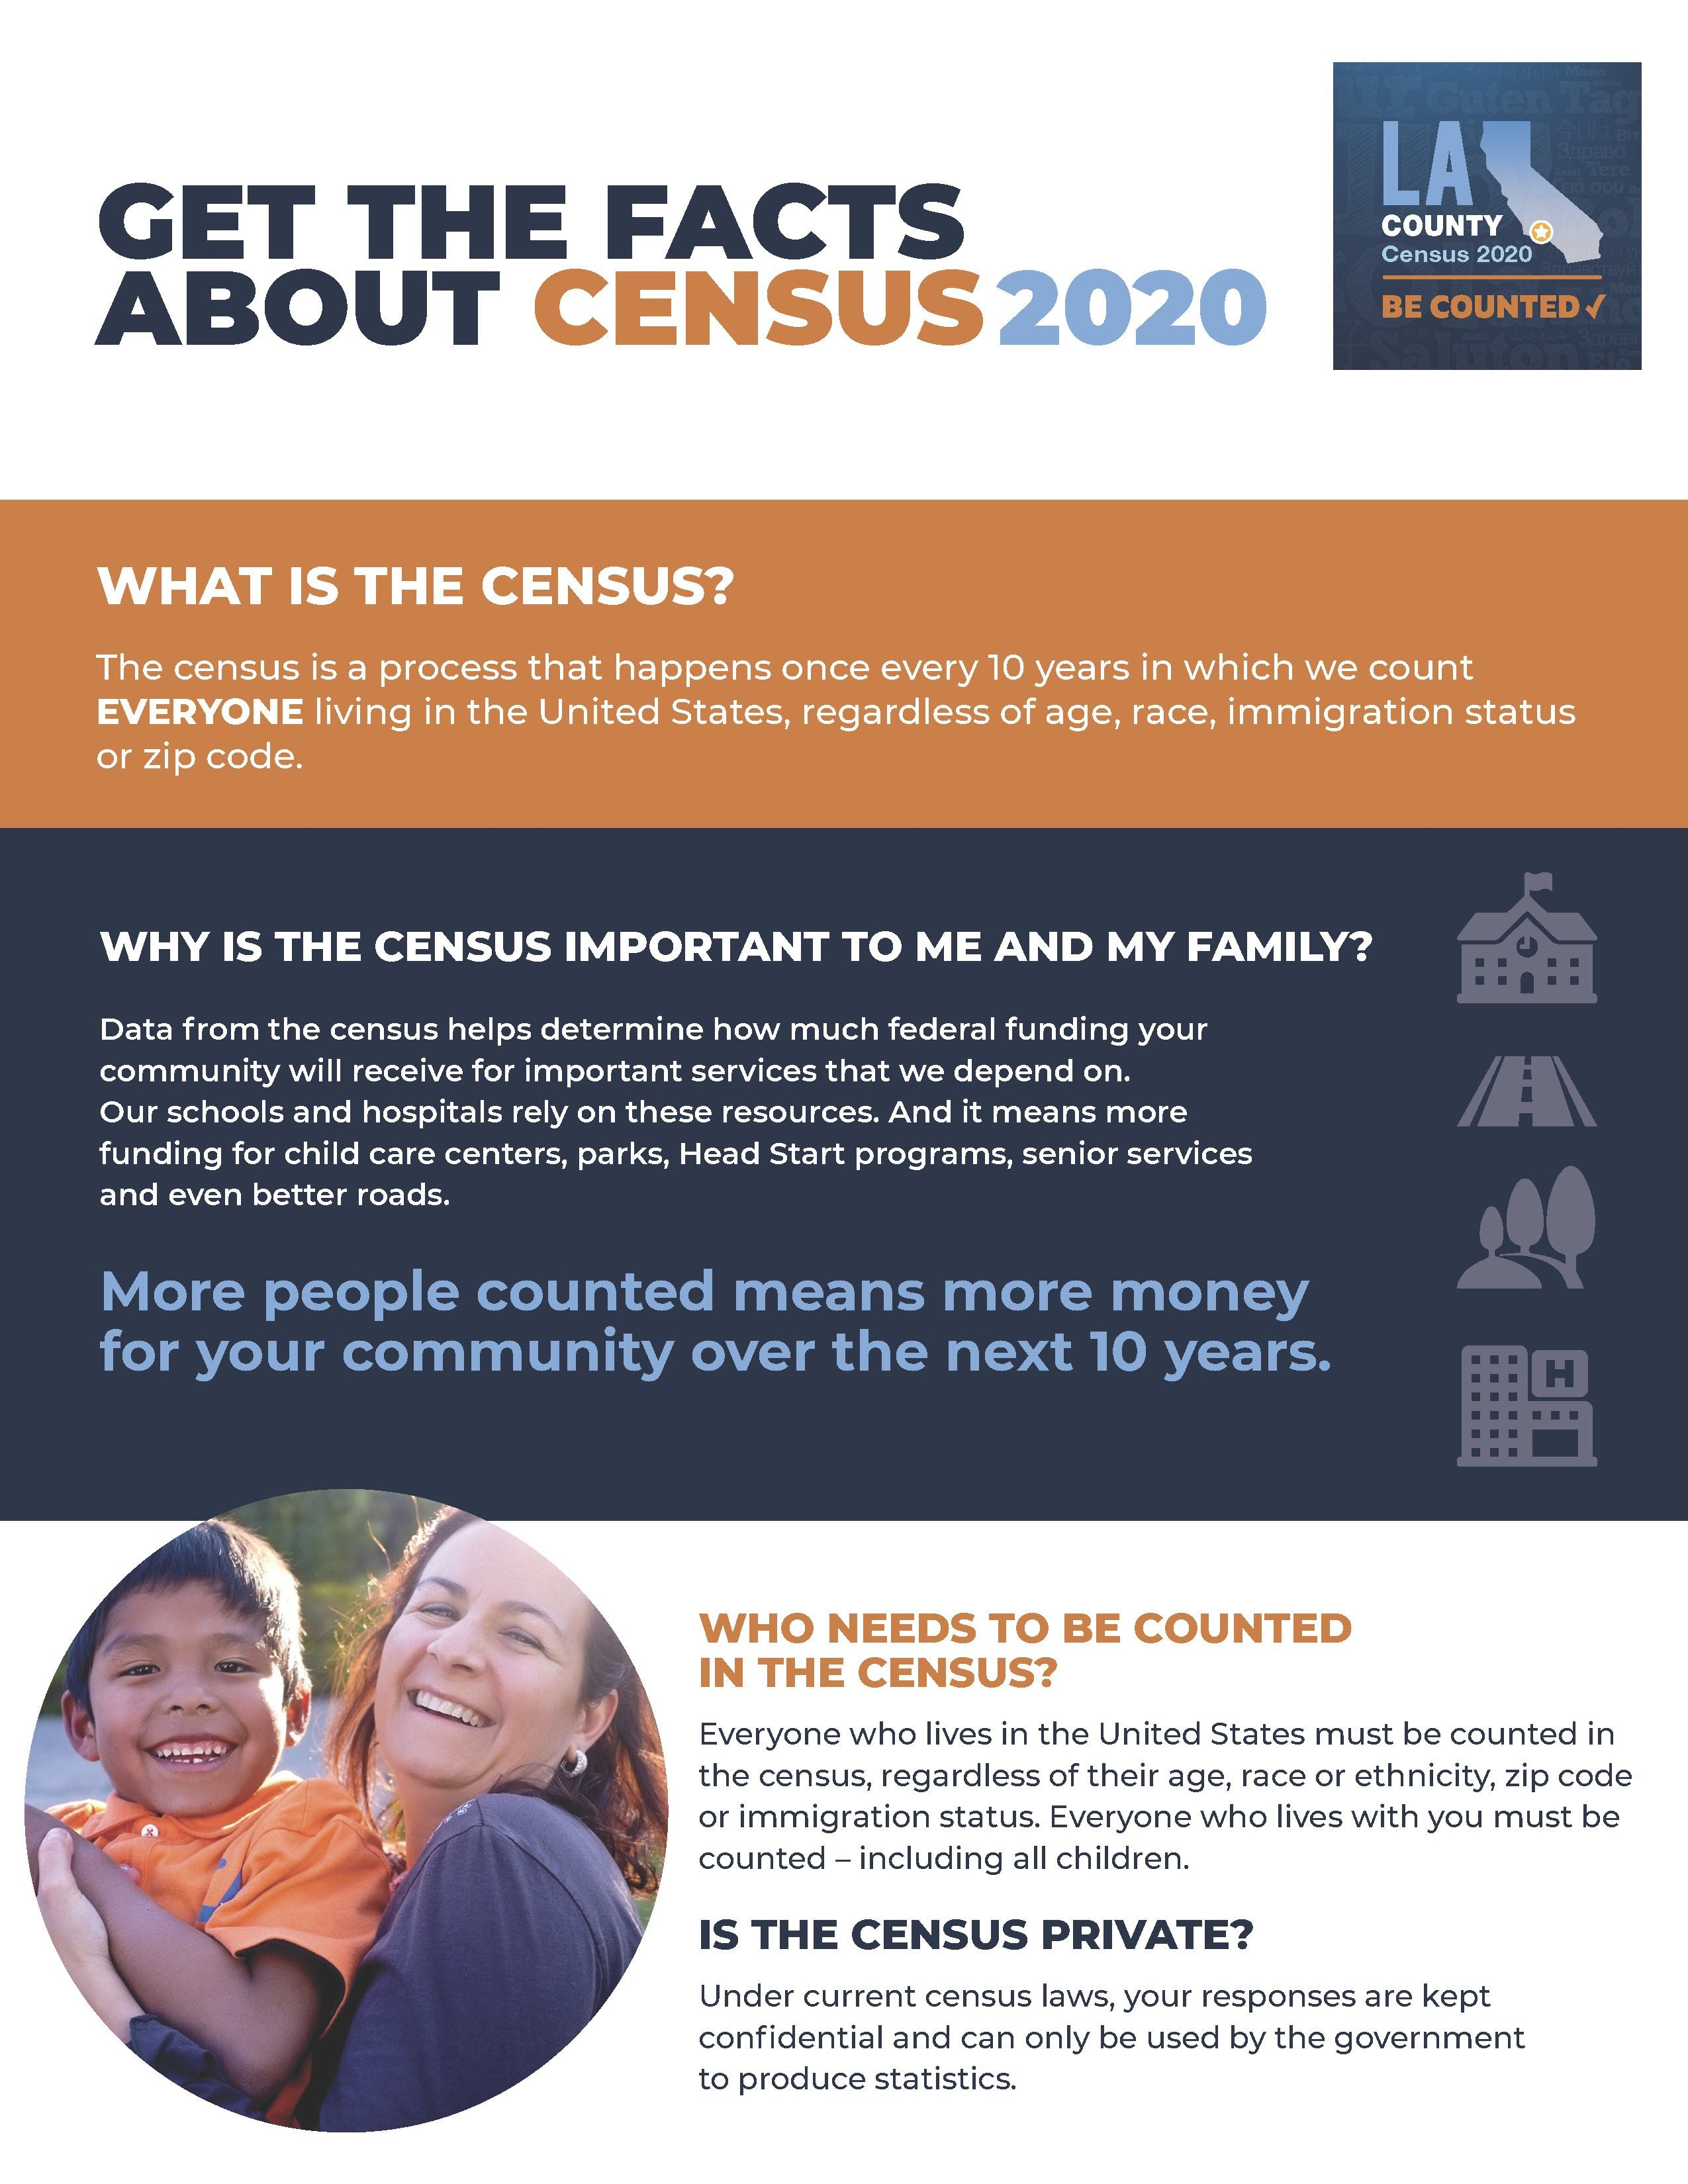 LAC Census Branded FAQ Page 1